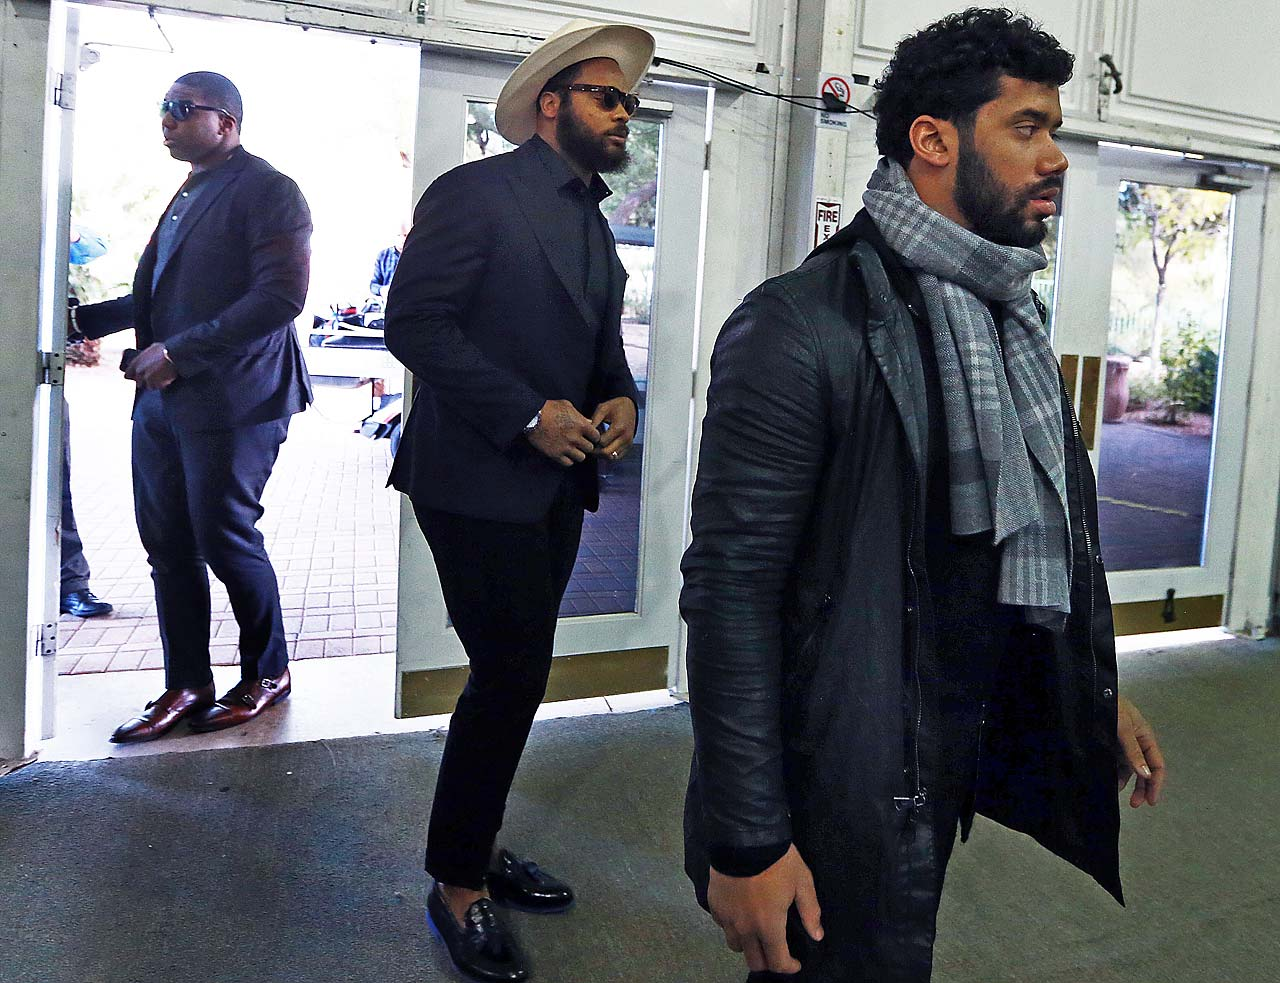 Seattle tackle Russell Okung, left, defensive end Michael Benett, center, and quarterback Russell Wilson, right, before media availability on Sunday.